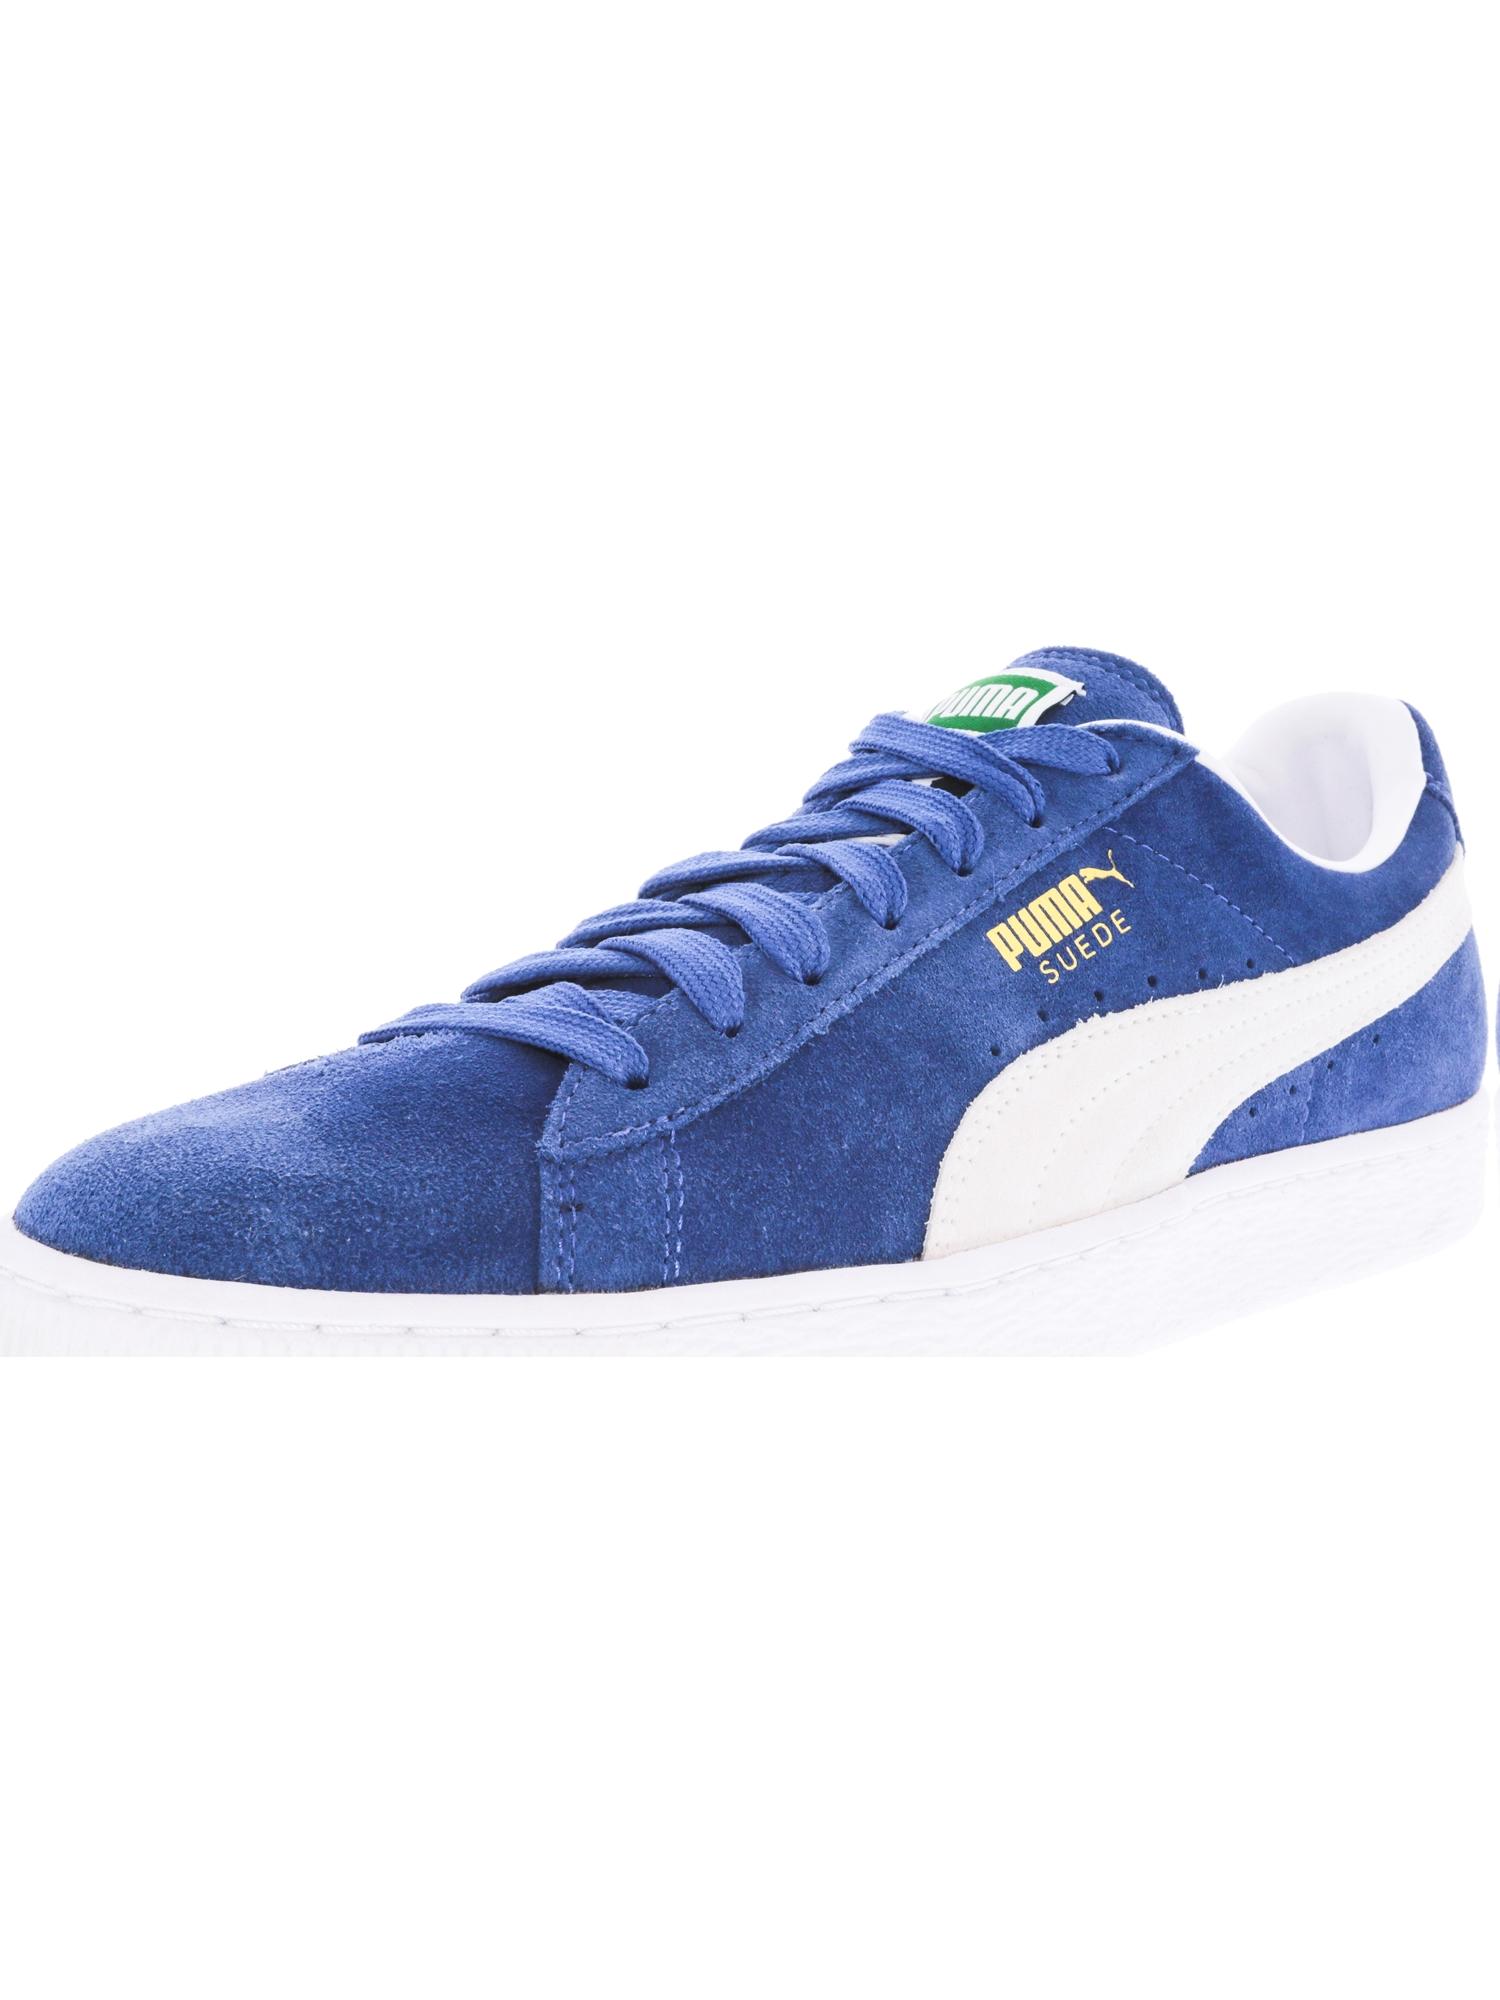 Puma Men's Suede Classic Olympian Blue / White Ankle-High Fashion Sneaker - 10.5M